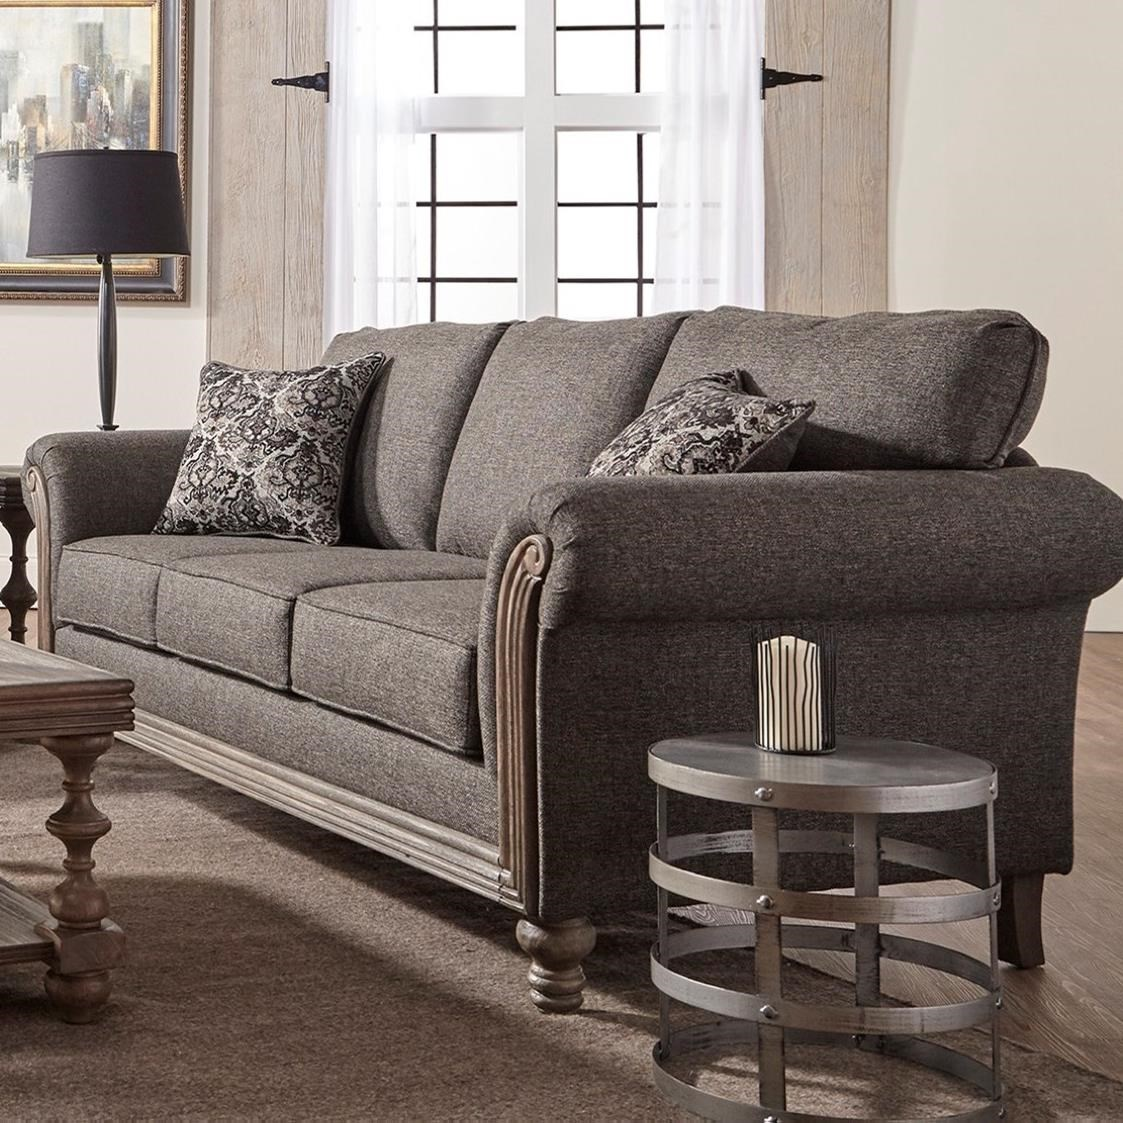 3400 Stationary Sofa by Serta Upholstery by Hughes Furniture at Rooms for Less